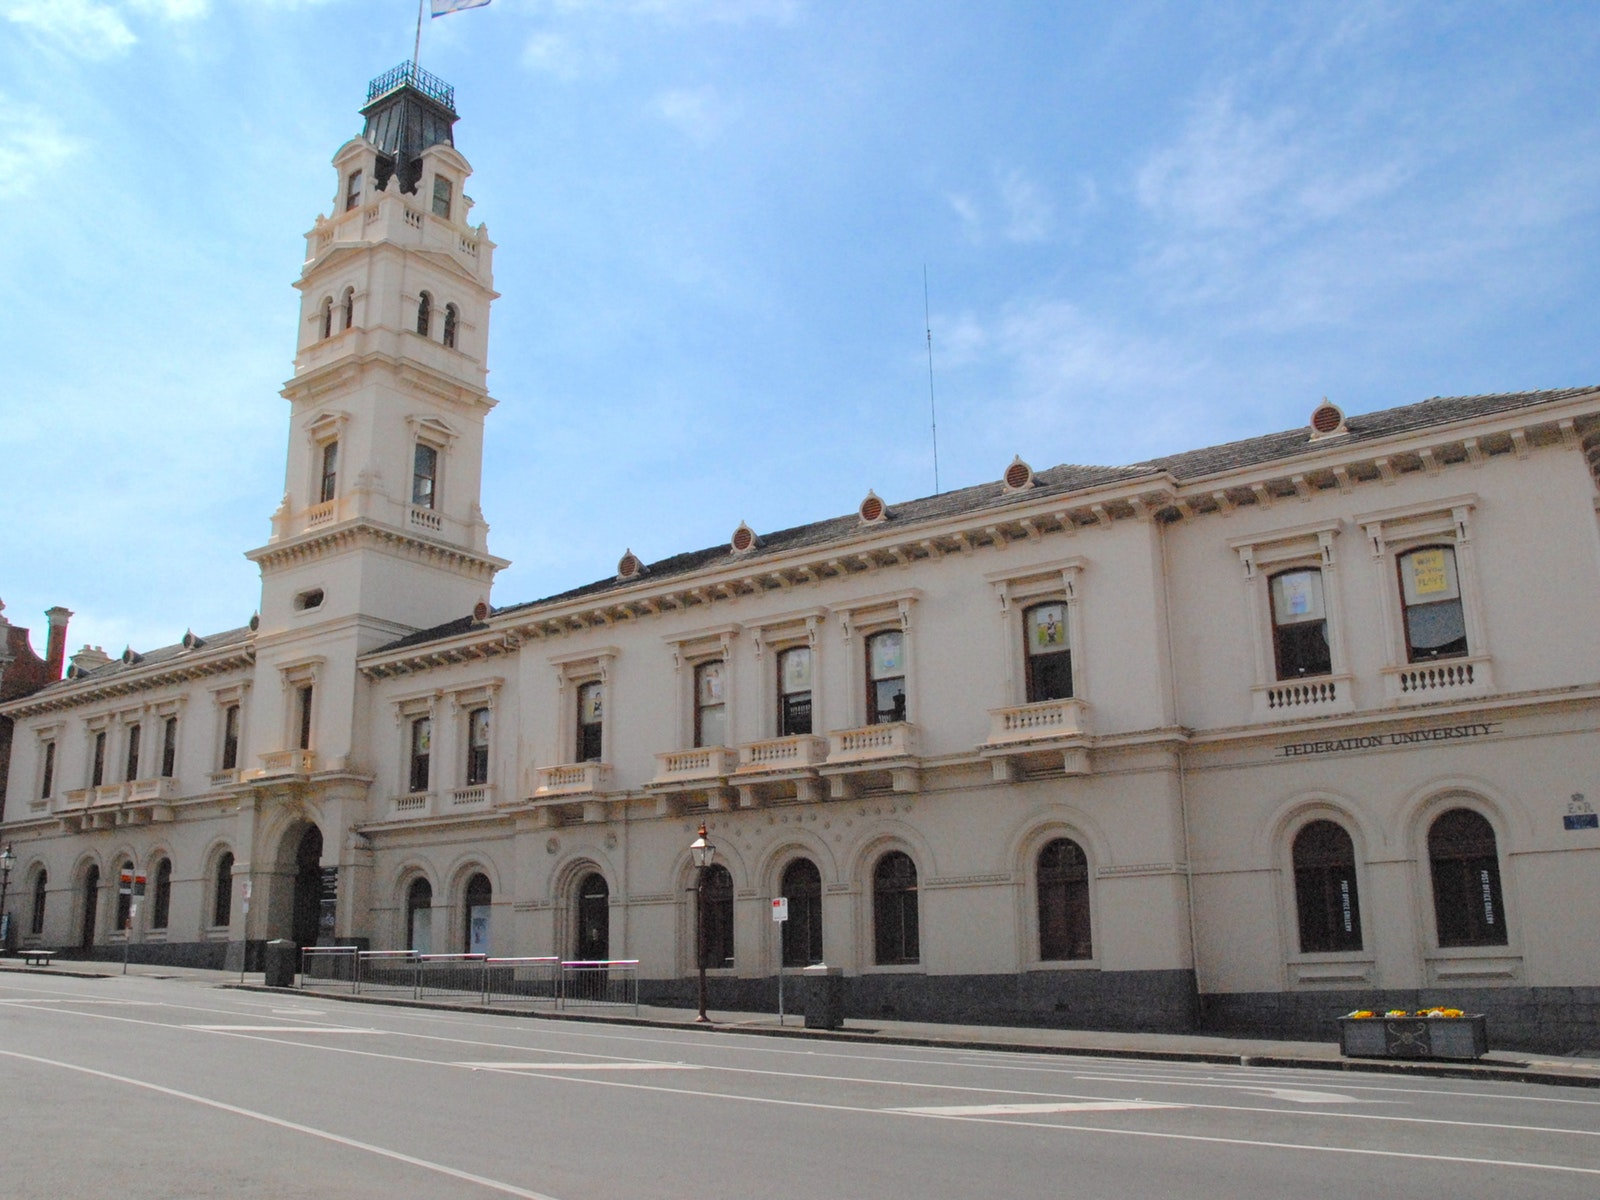 Then Ballarat Writers Festival will take place in central Ballarat around the Federation University